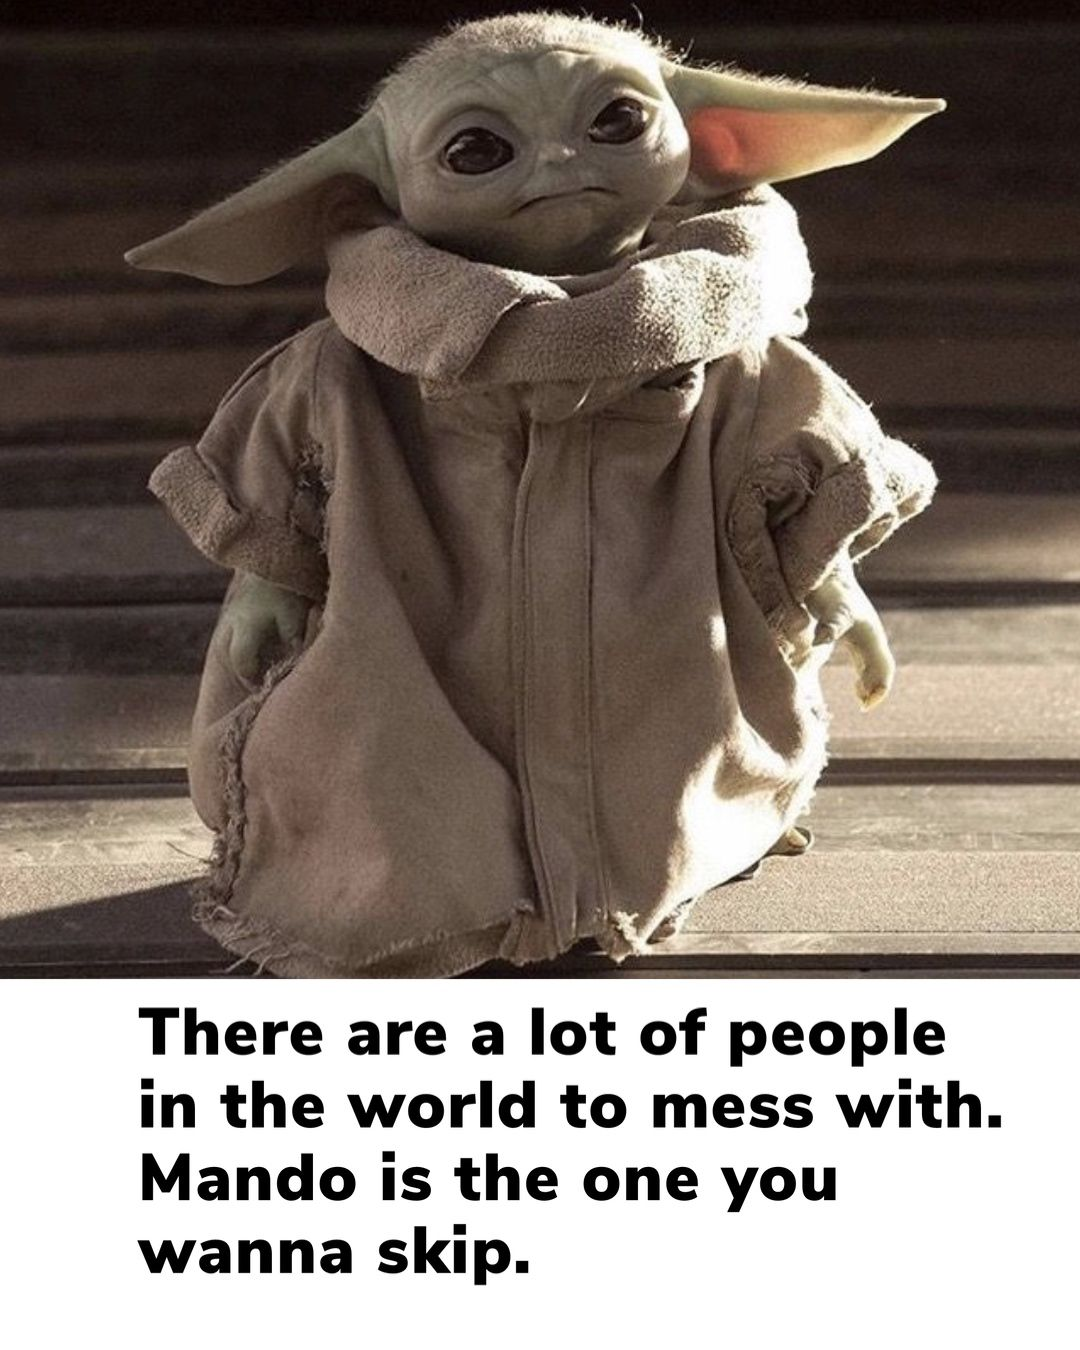 Pin by Jason Campbell on Baby Yoda in 2020 Star wars